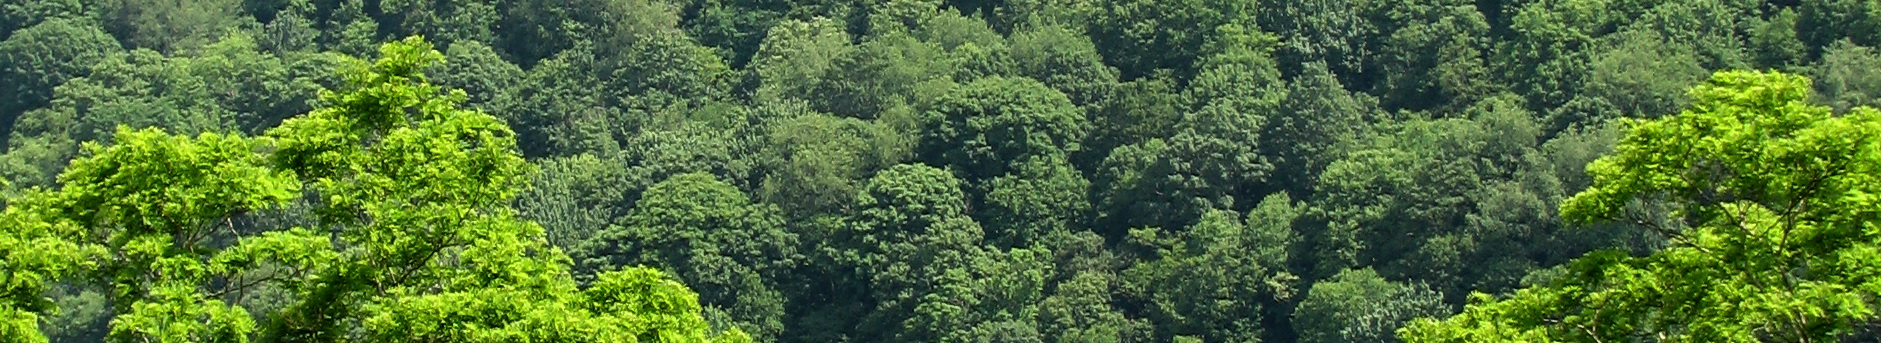 forest canopy header